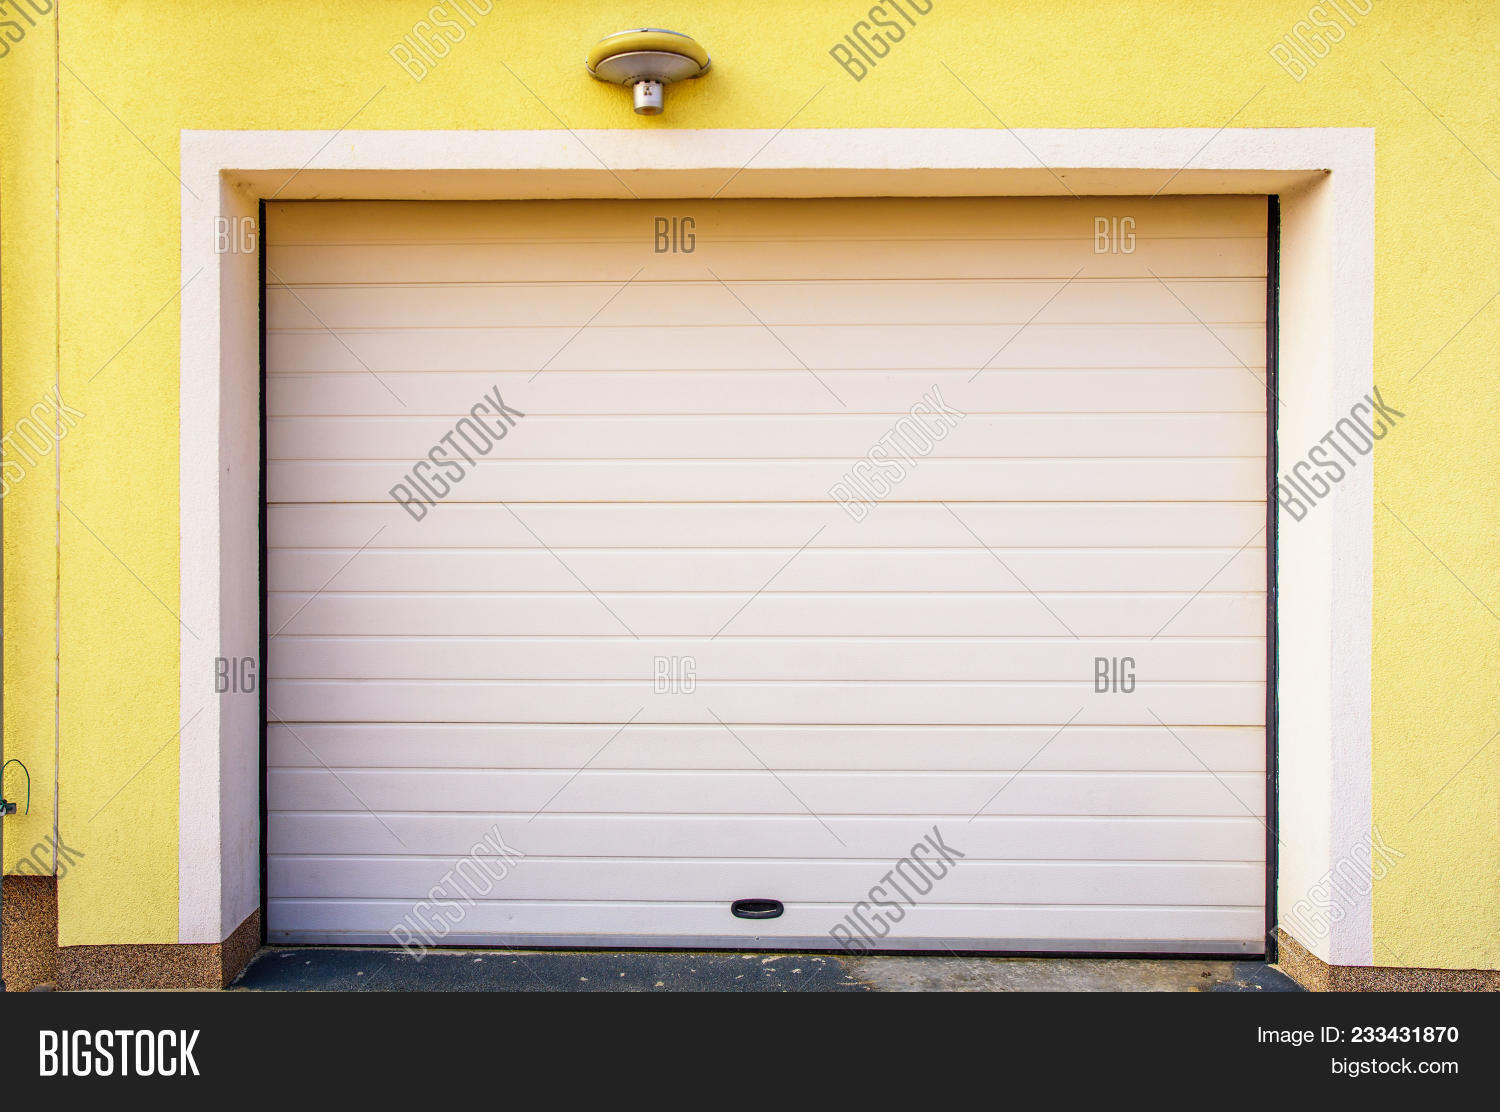 architecture,automatic,background,blank,building,closed,construction,corrugated,design,detail,door,exterior,garage,gate,heavy,home,house,industrial,industry,line,material,modern,panel,paneling,pattern,plastic,plate,pvc,rectangle,remote,rough,security,sheet,striped,style,surface,wall,white